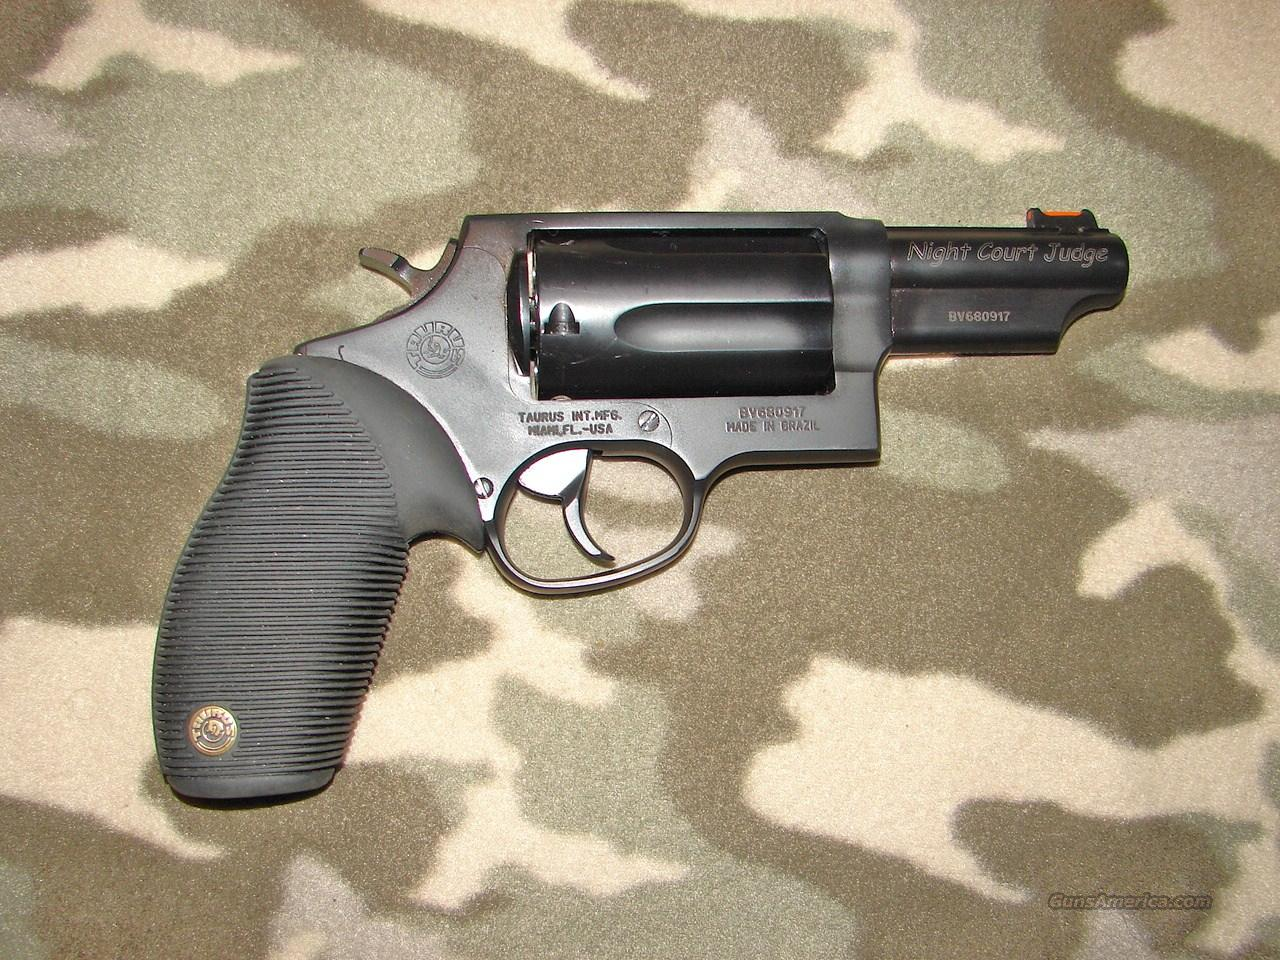 Taurus Model 4510 Night Court Judge  Guns > Pistols > Taurus Pistols > Revolvers